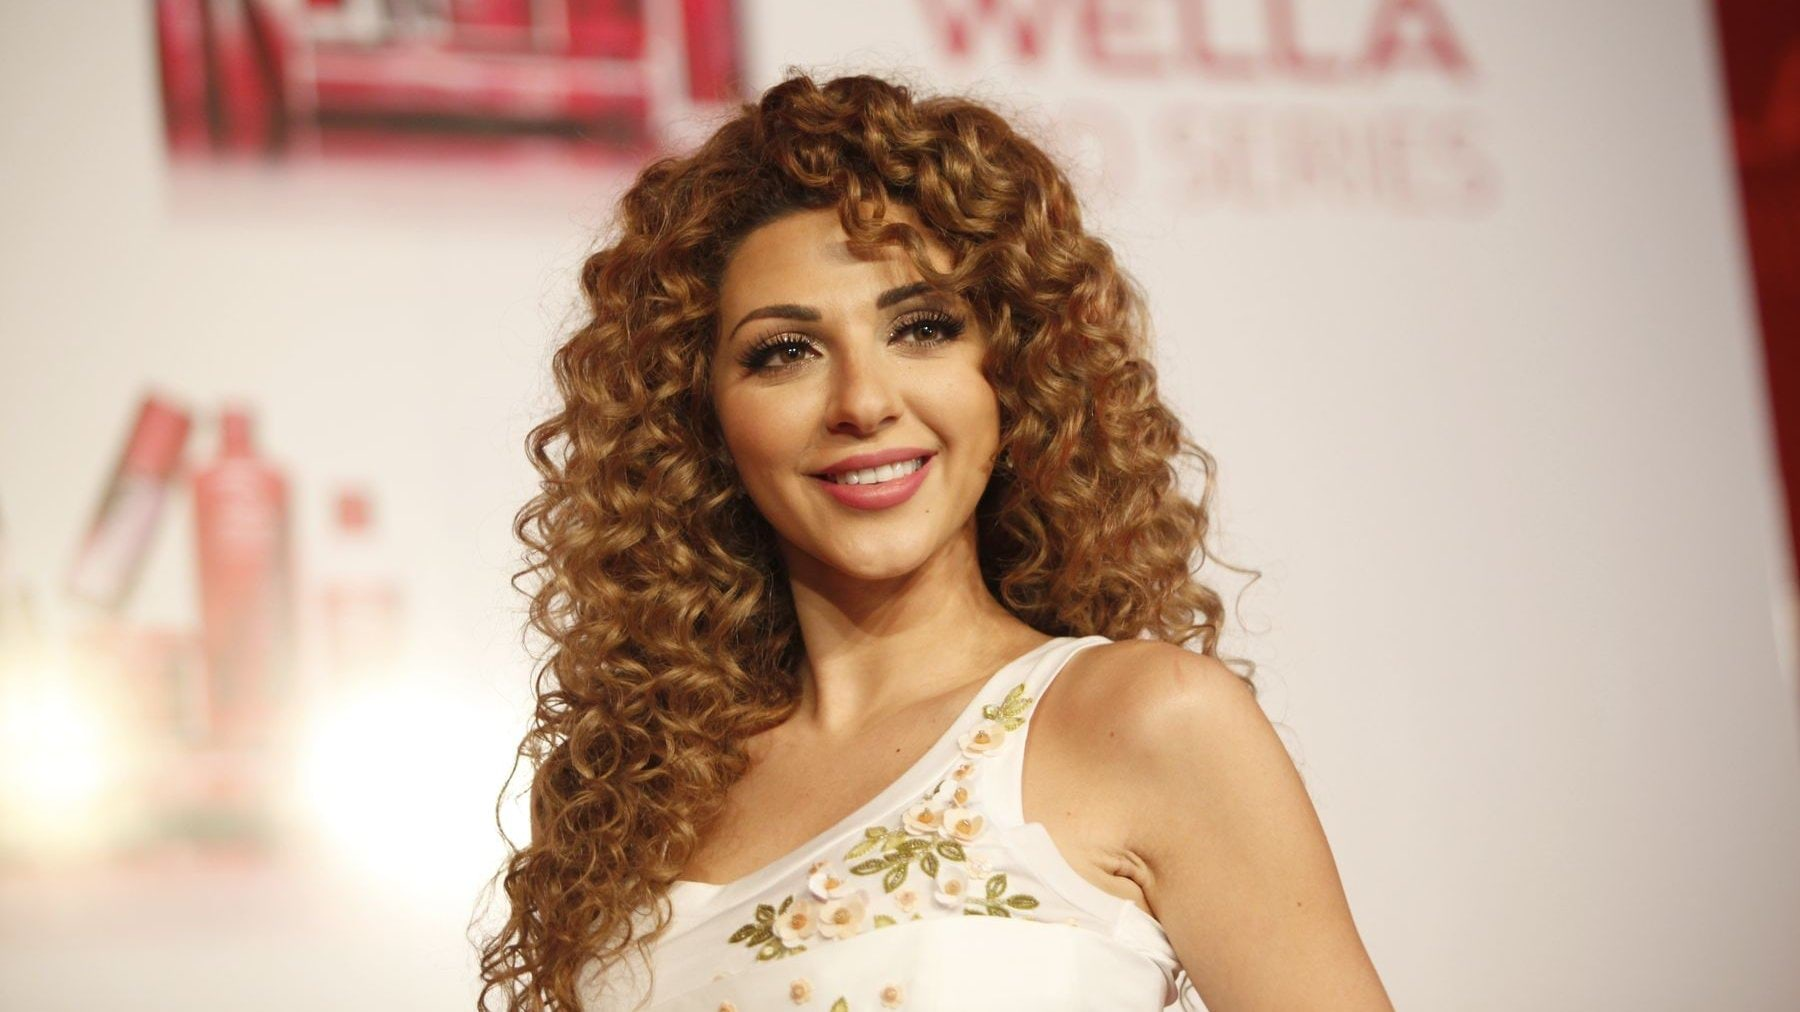 myriam-fares-cute-smile